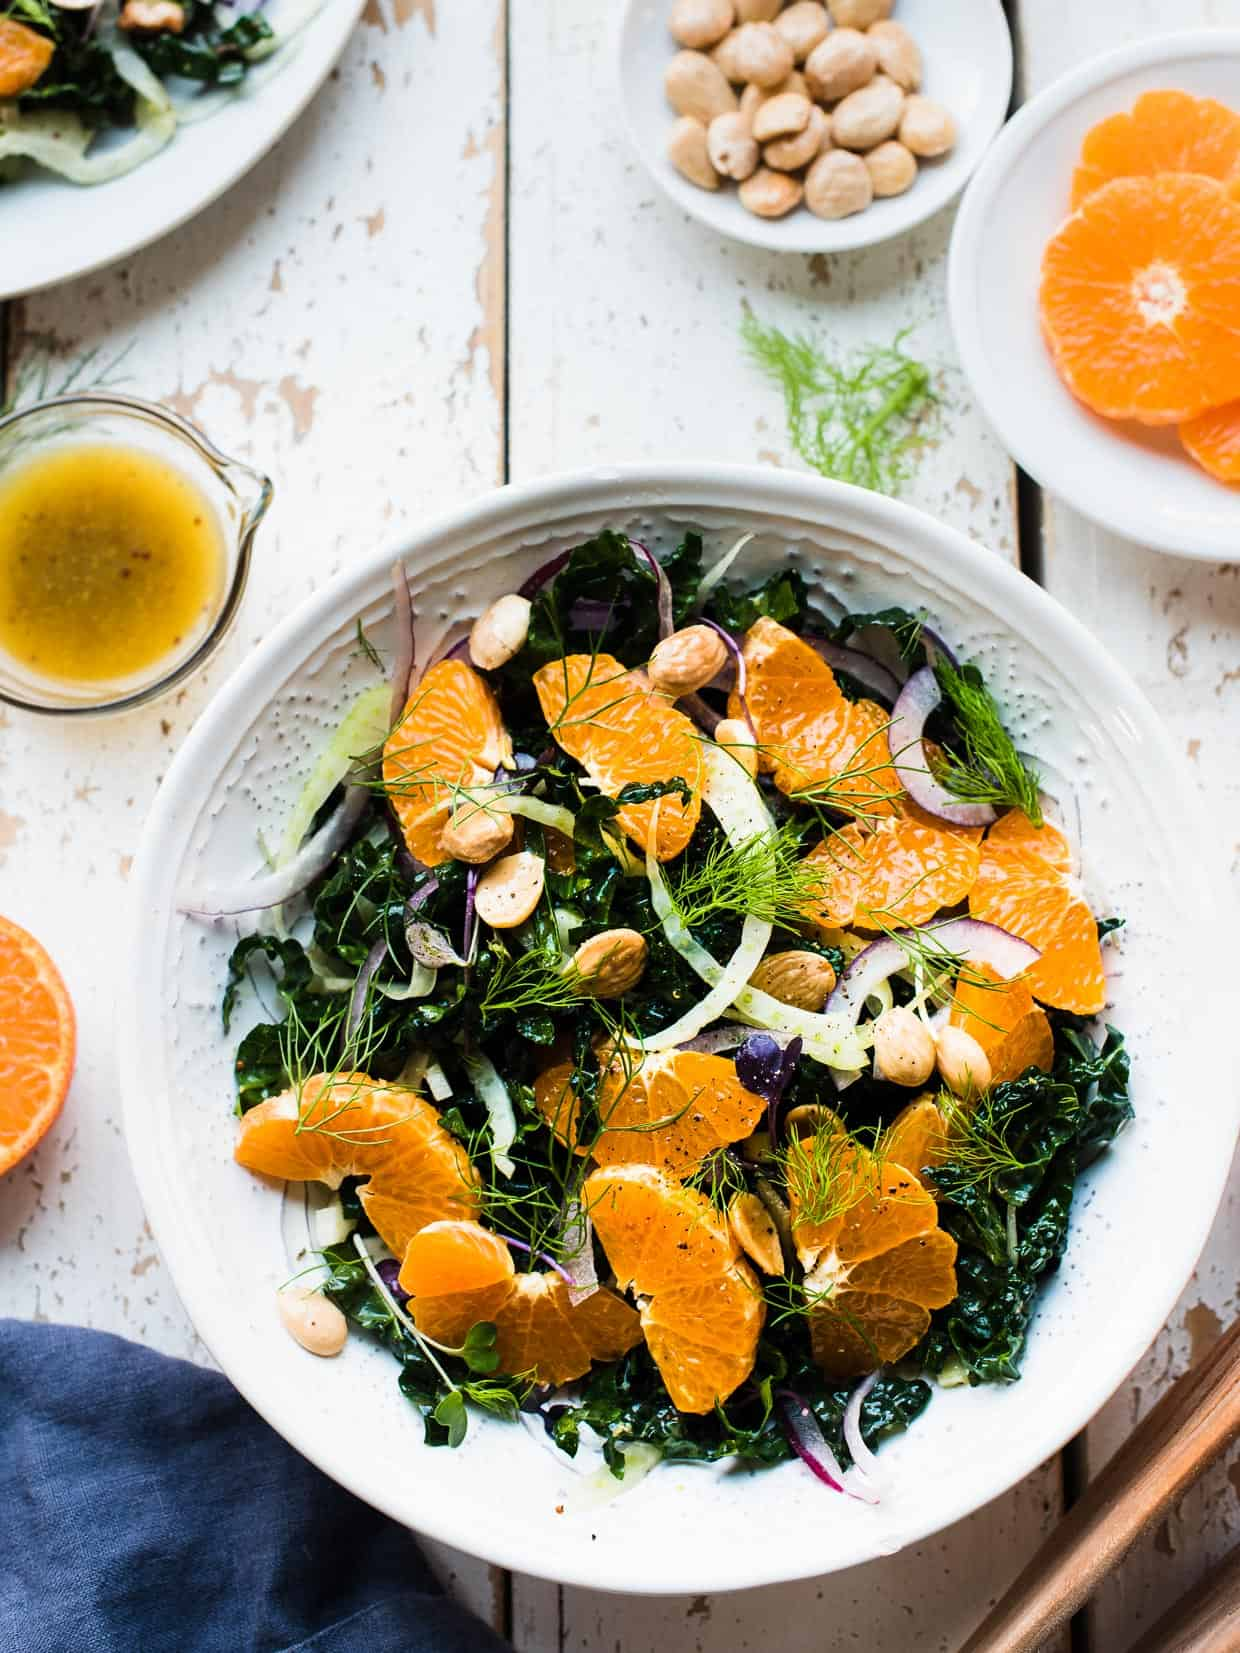 overhead shot of kale salad with mandarin oranges, fennel, marcona olives and orange vinaigrette on the side